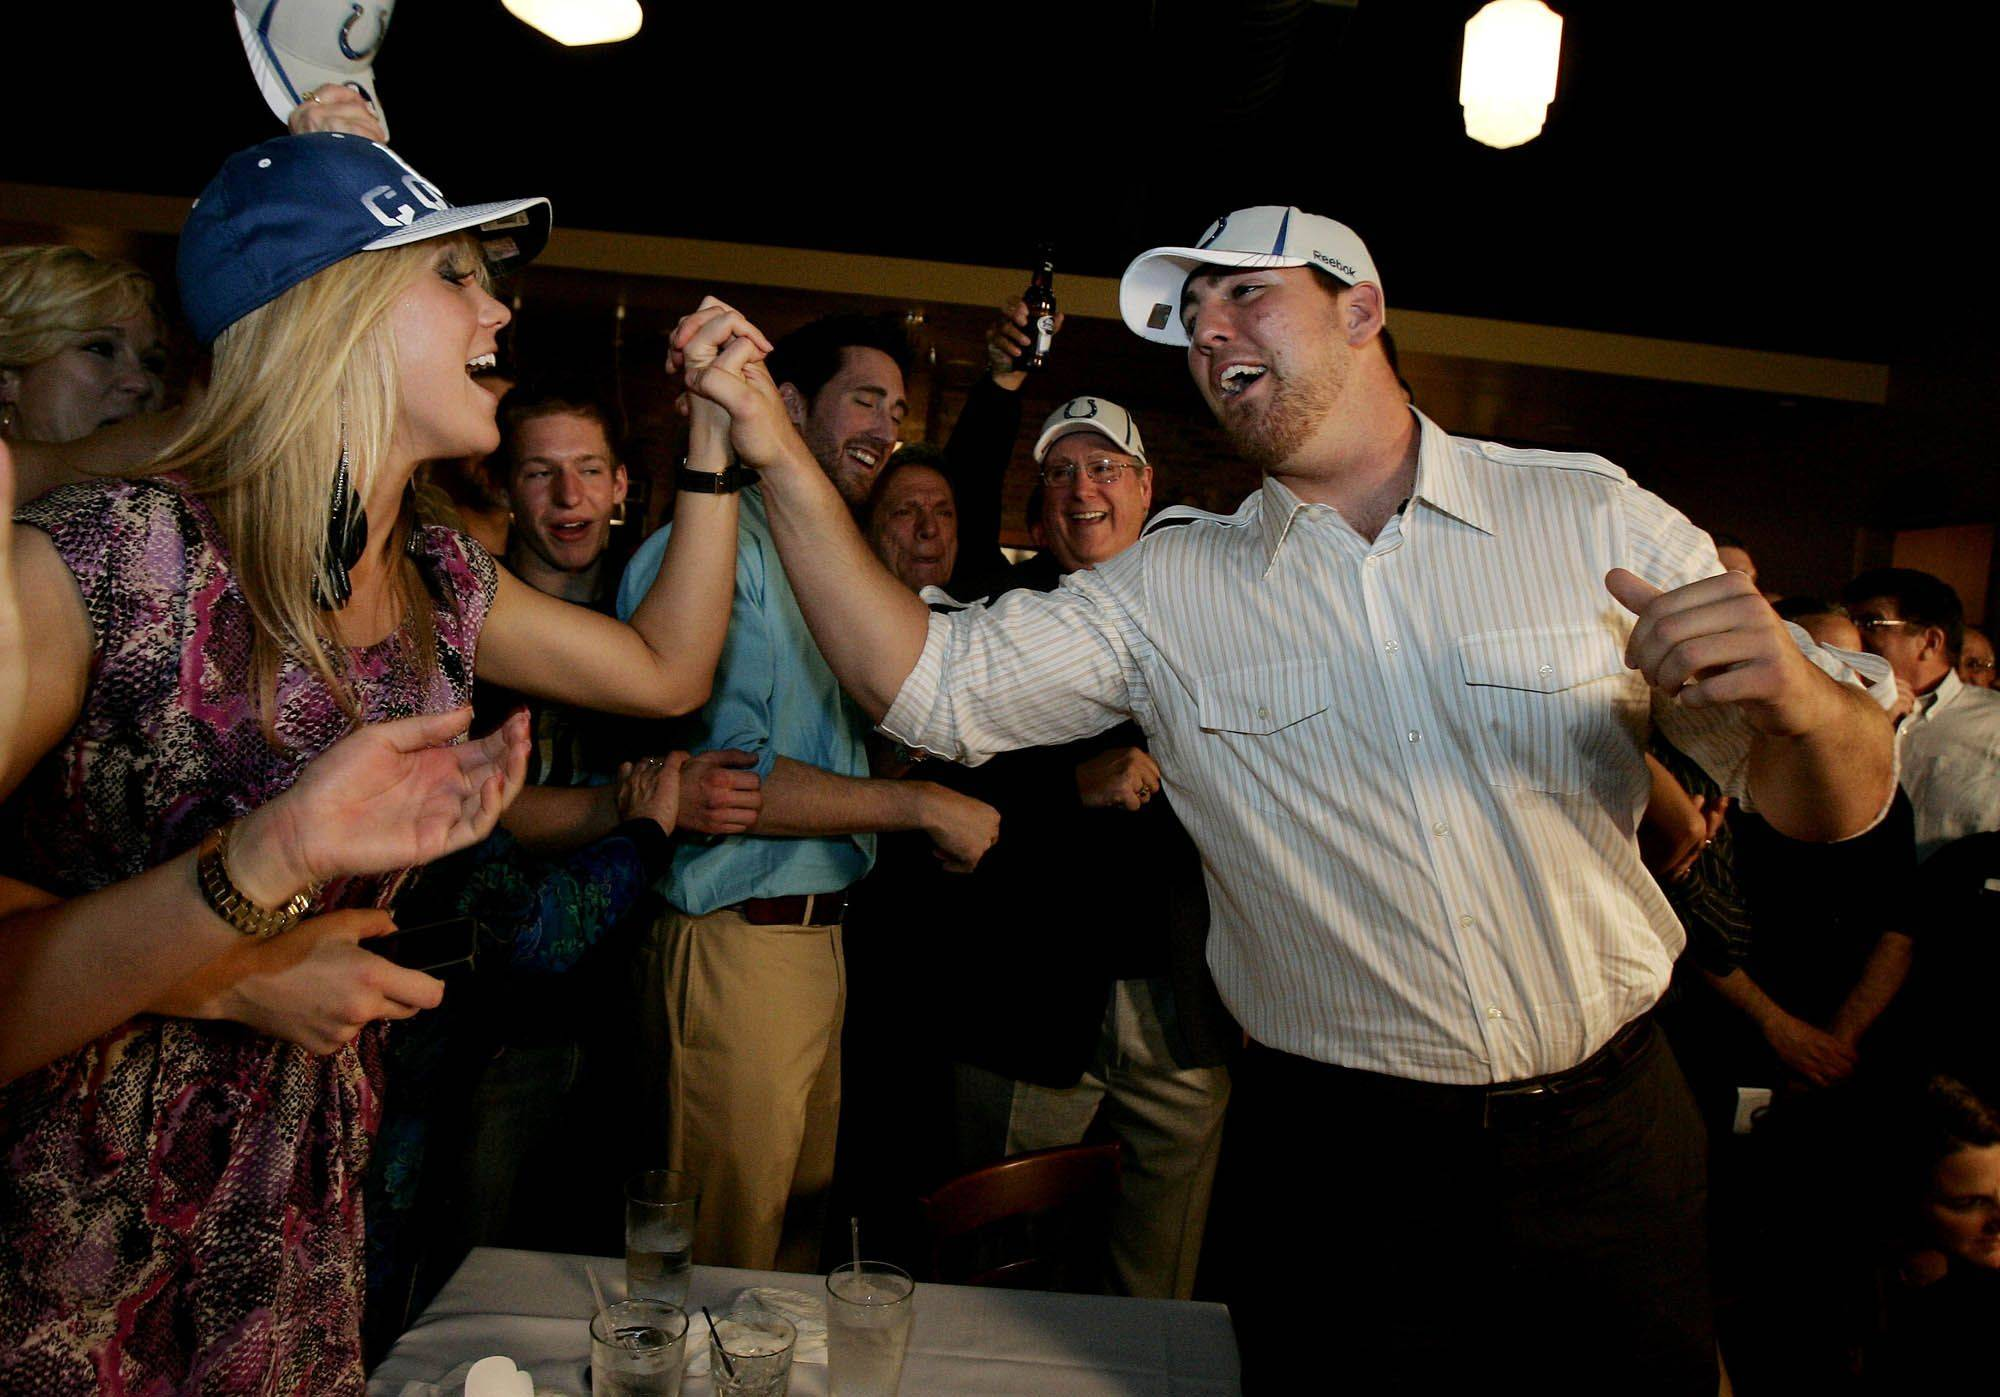 Boston College football player Anthony Castonzo from Hawthorn Woods receives a high five from his sister Kristyn as they celebrate after he was selected by the Indianapolis Colts in the first round of the NFL draft Thursday night.